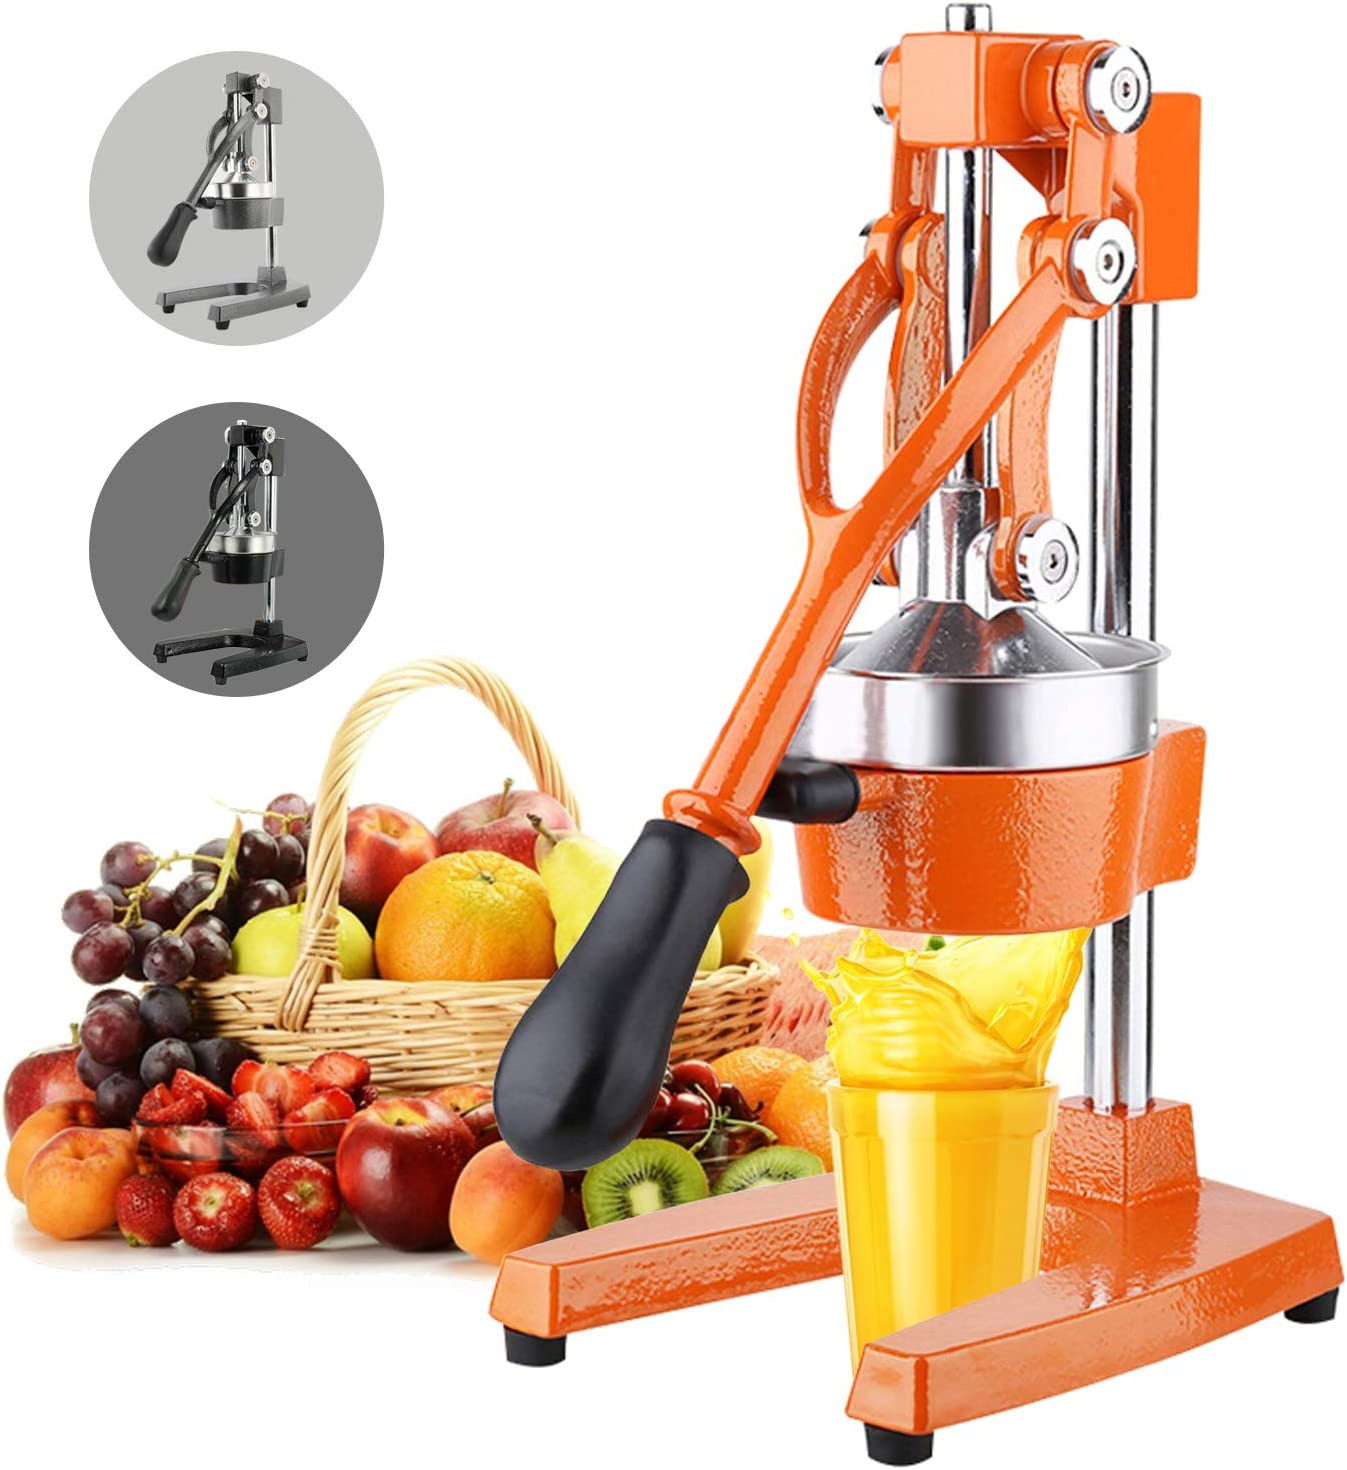 Commercial Grade Citrus Juicer Heavy Duty Manual Fruit Juicer Hand Press lemon and Orange squeezer Pomegranate Press Stand (orange)